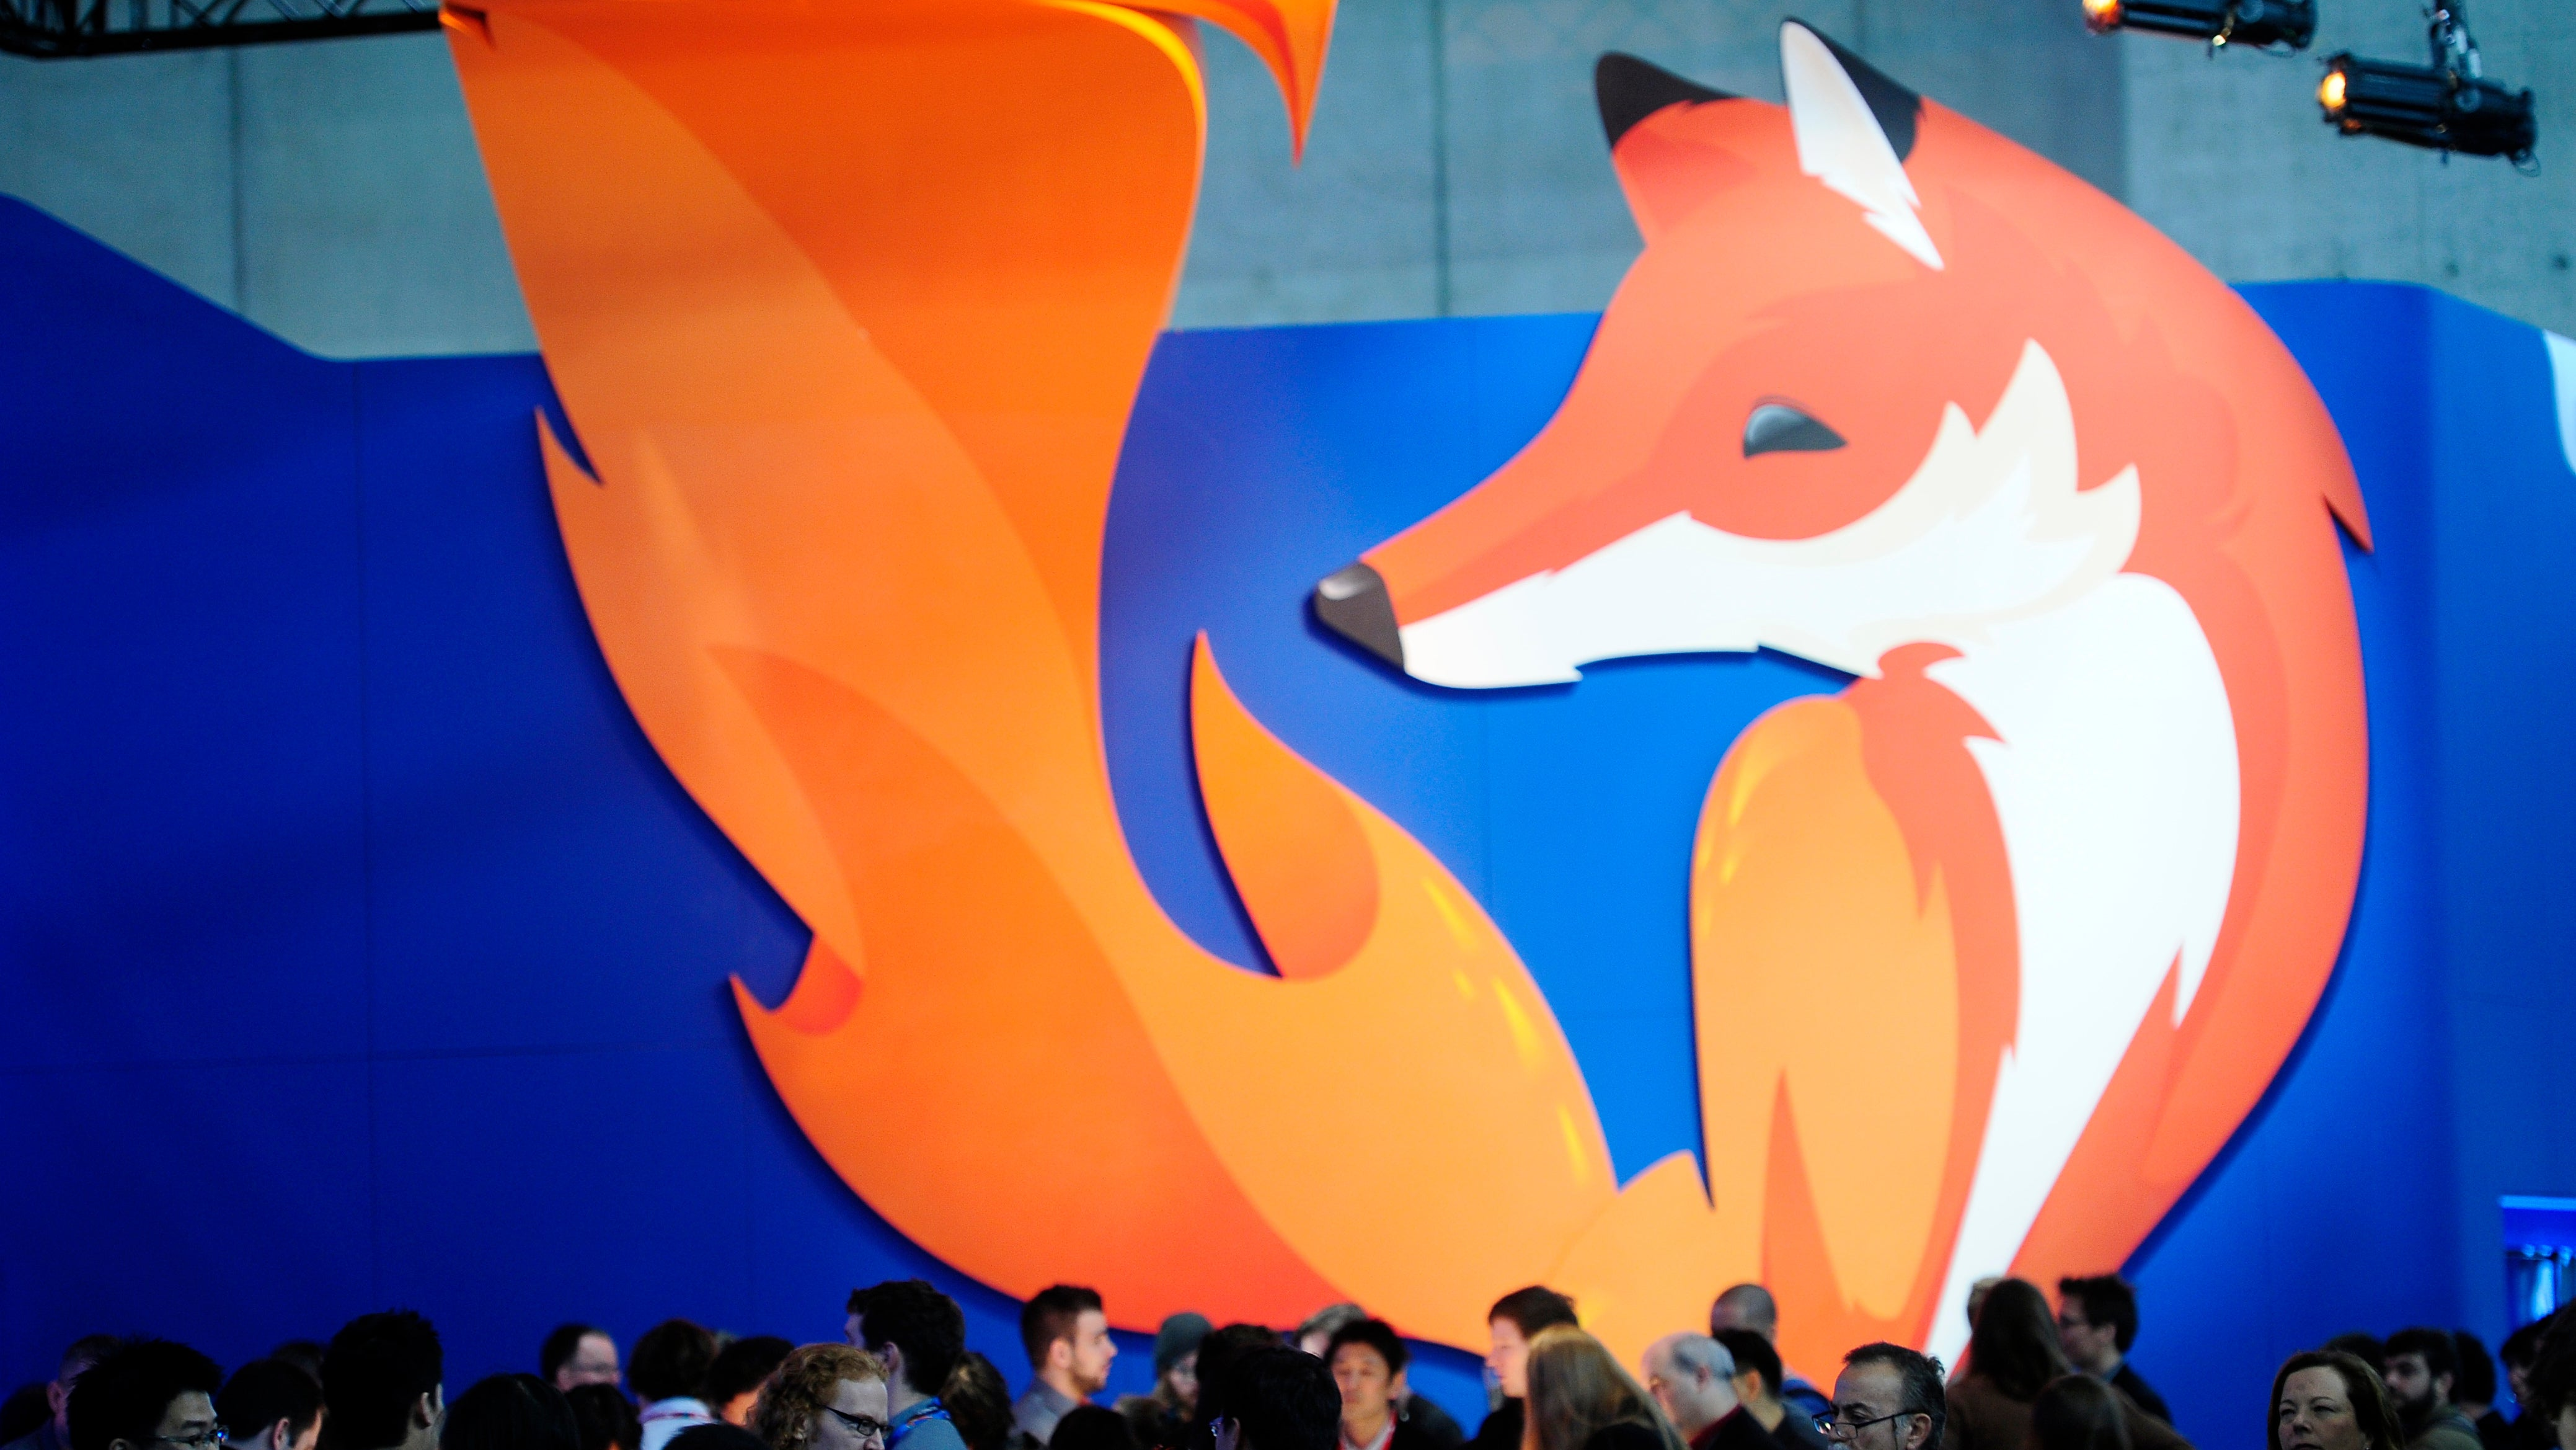 Mozilla Slipped A 'Mr Robot' Promo Plugin Into Firefox And Users Are Pissed